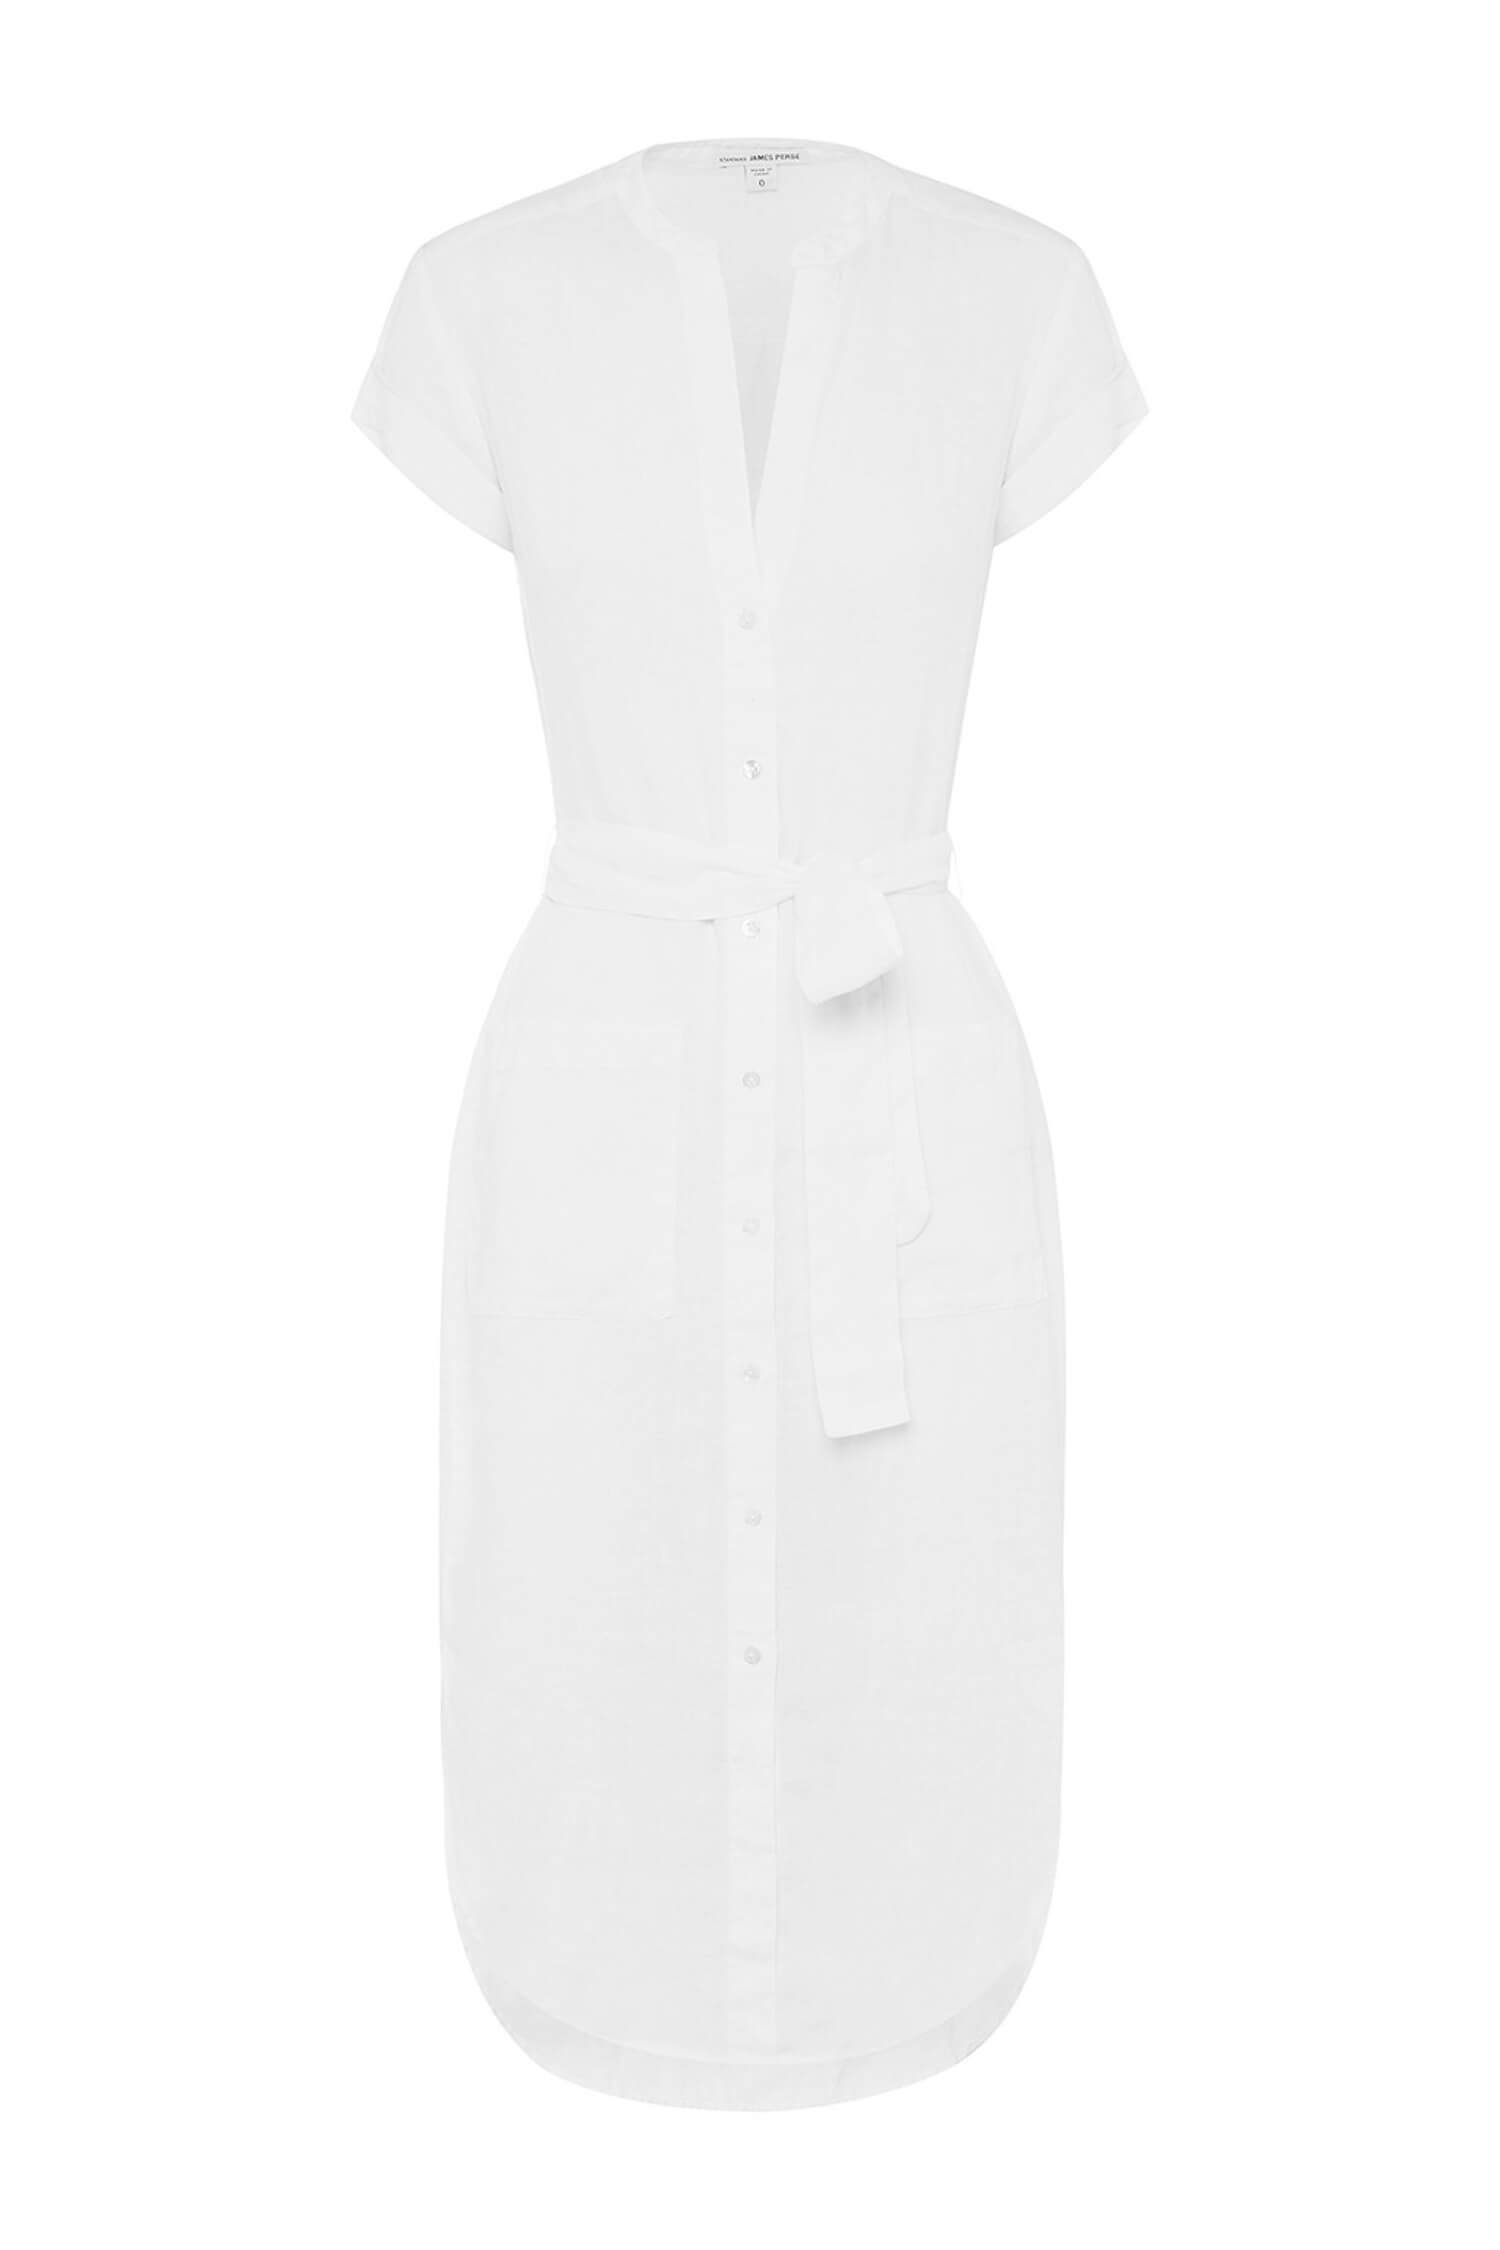 est living gift guide her linen white shirt dress